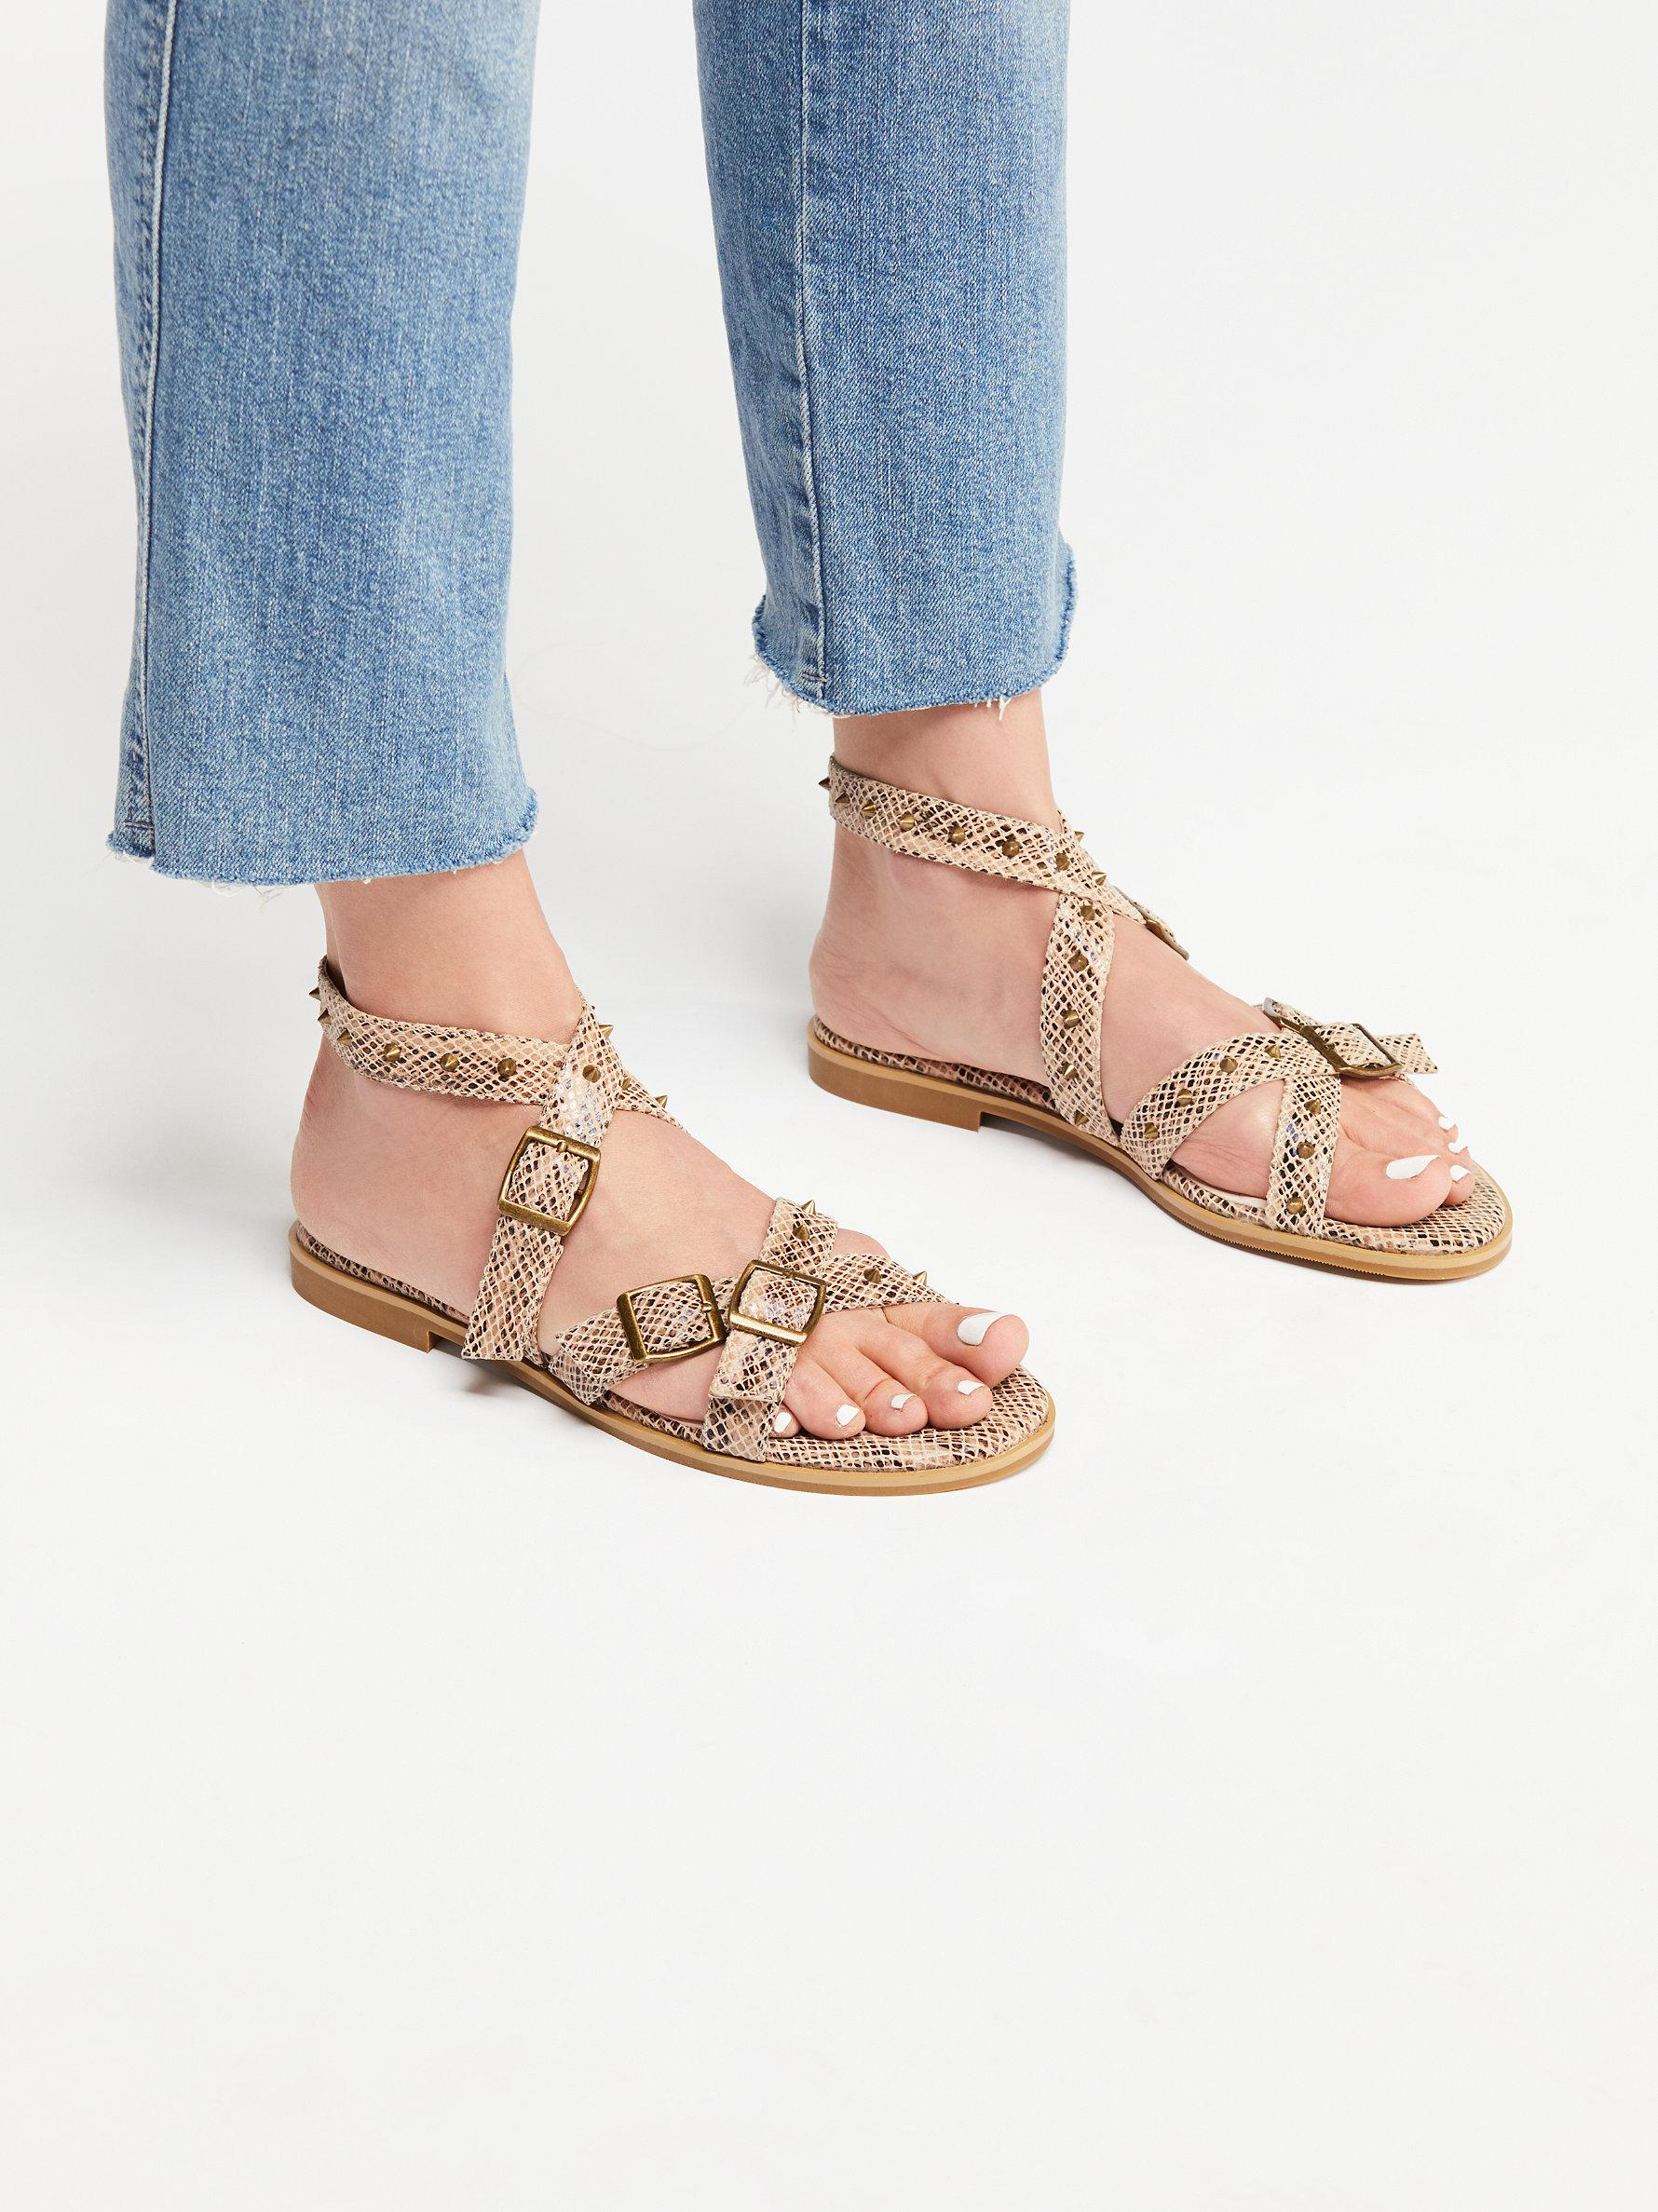 f0e62b64837 Free People Picnic Stud Sandal in Metallic - Lyst